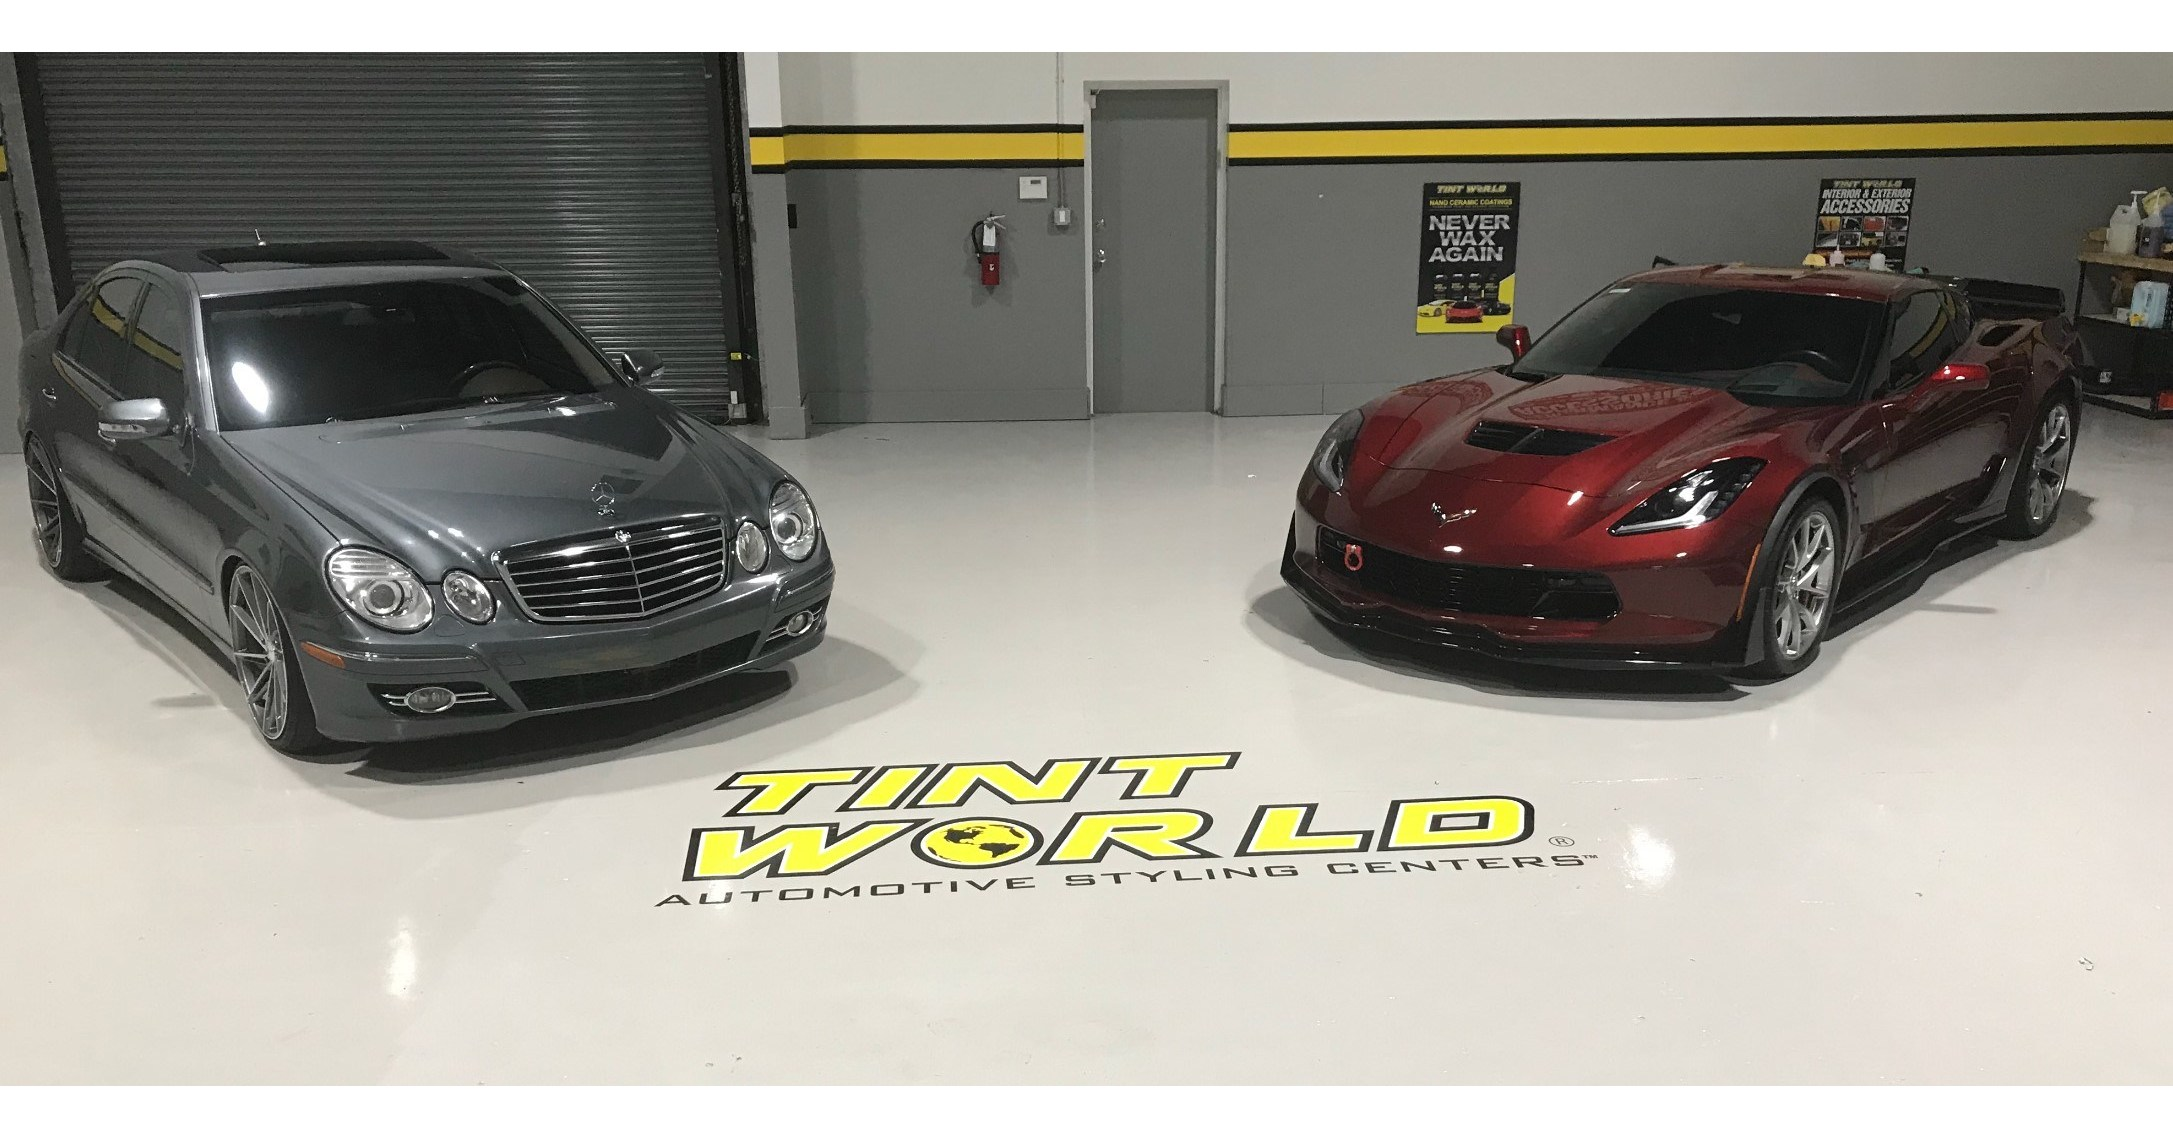 Tint World® in Coconut Creek to Hold Grand Opening Aug. 11